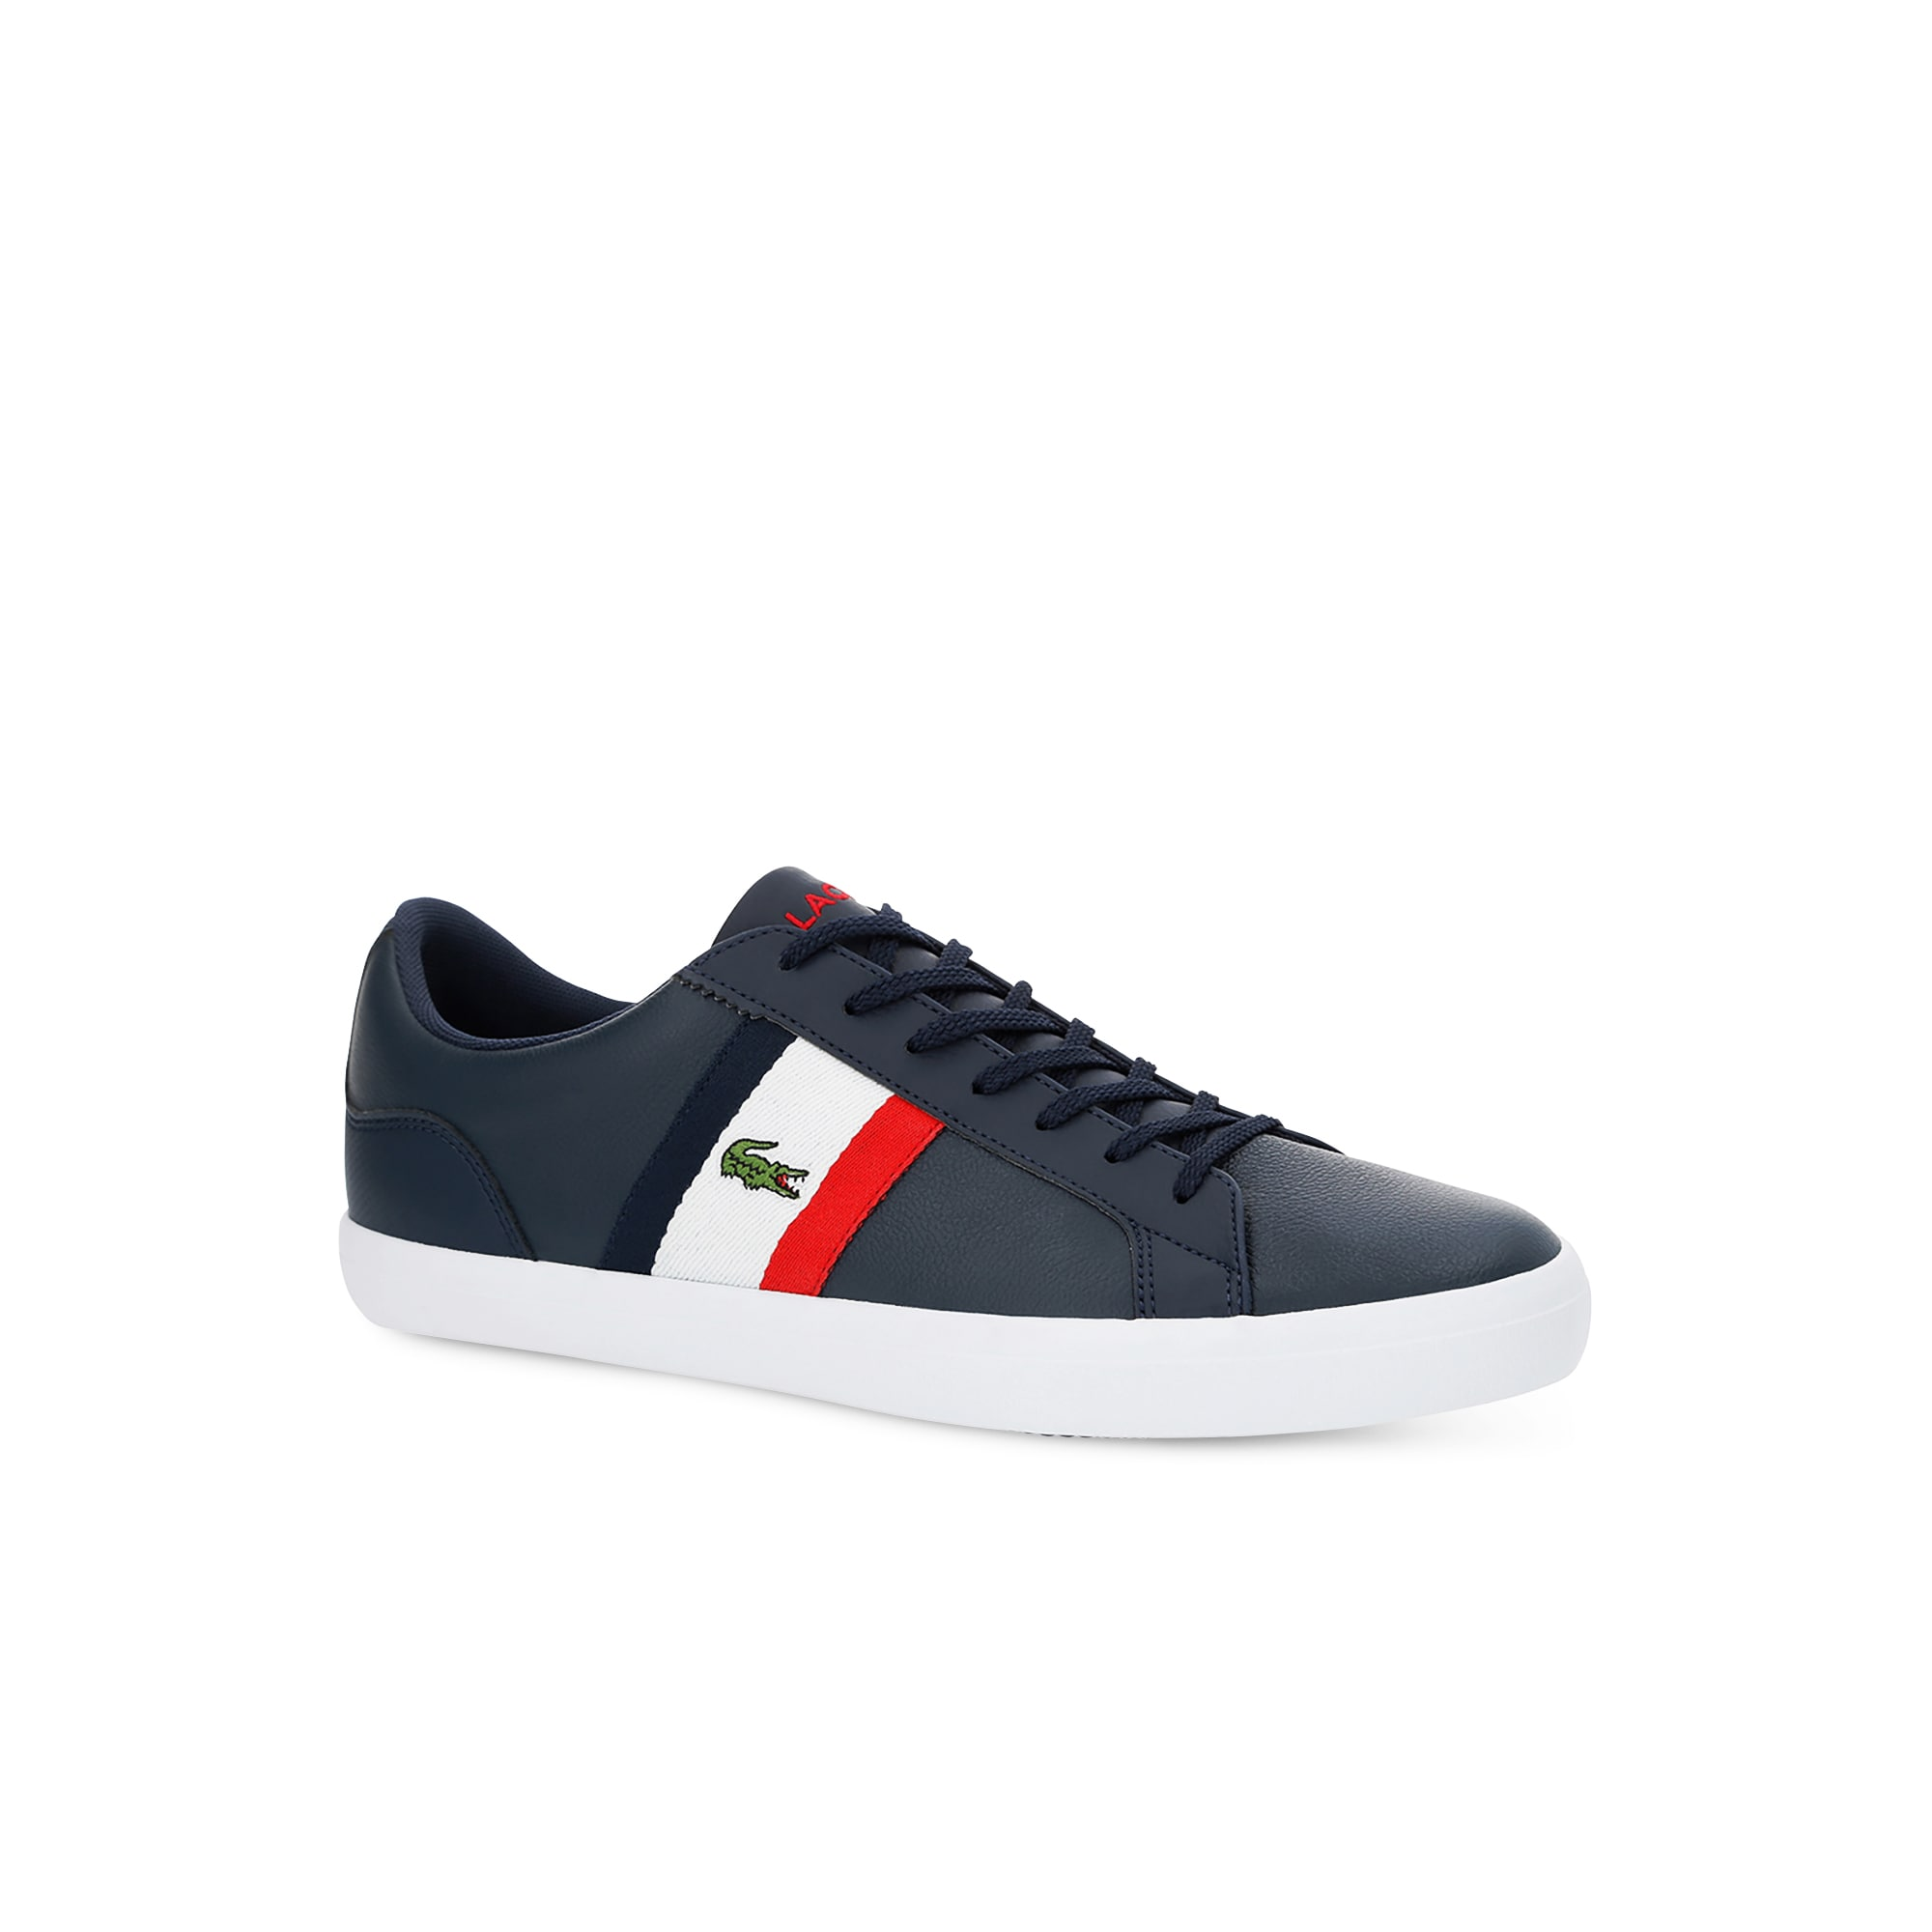 a12747eb271b2 Chaussures homme   Collection Homme   LACOSTE